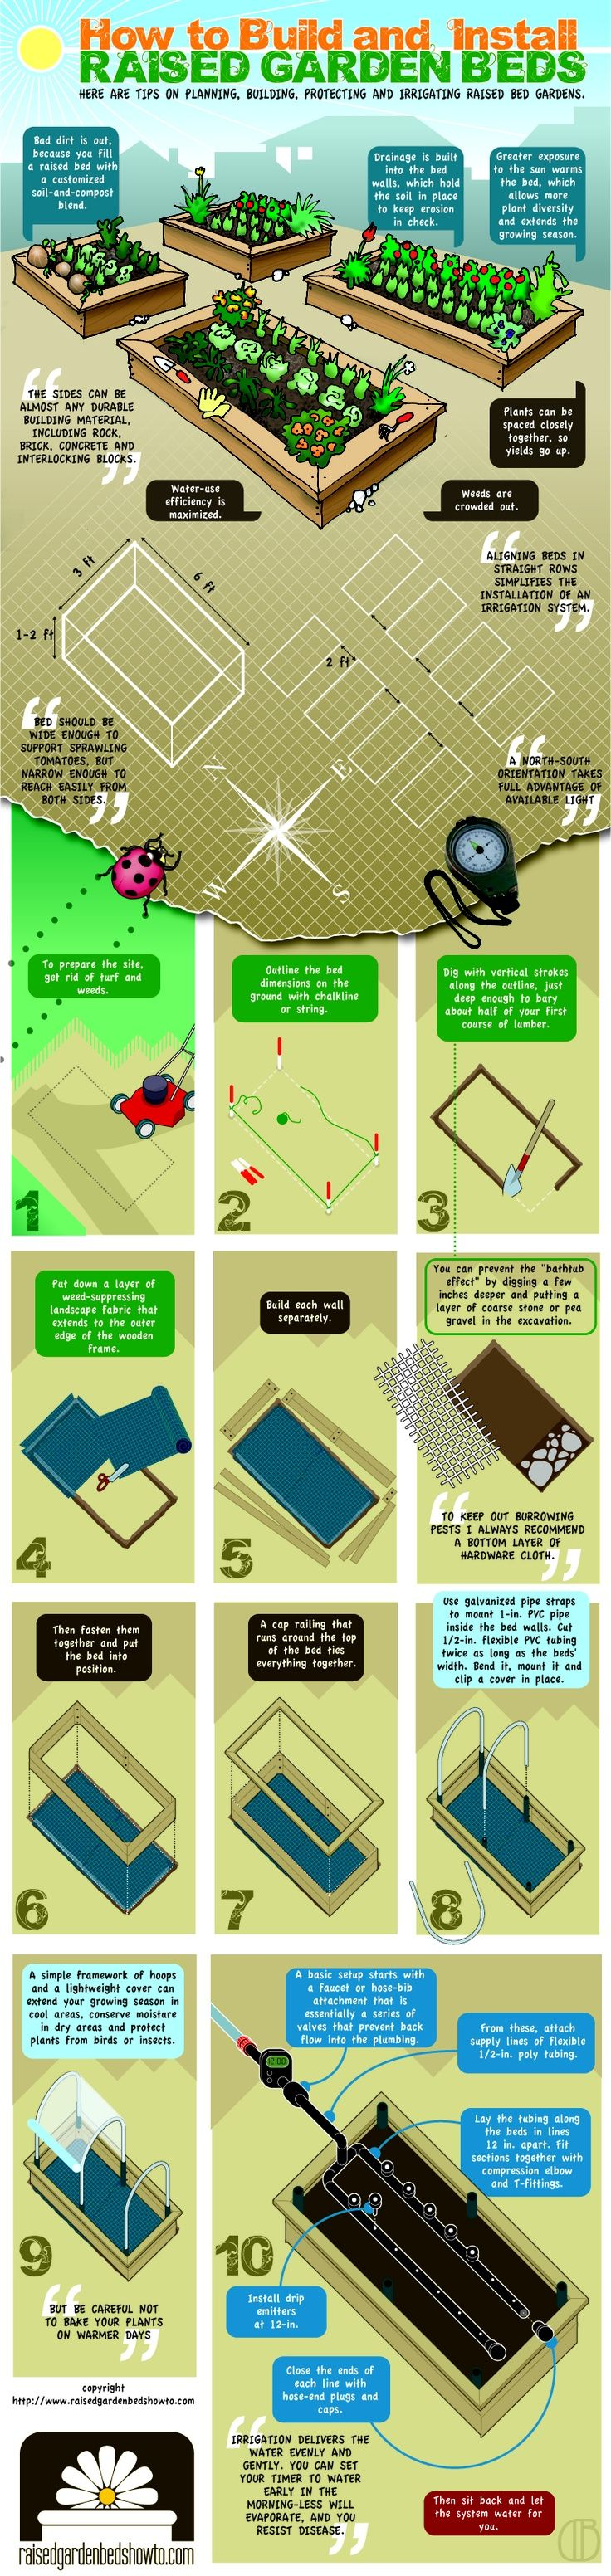 Diy raised beds growing food anywhere infographic gardening